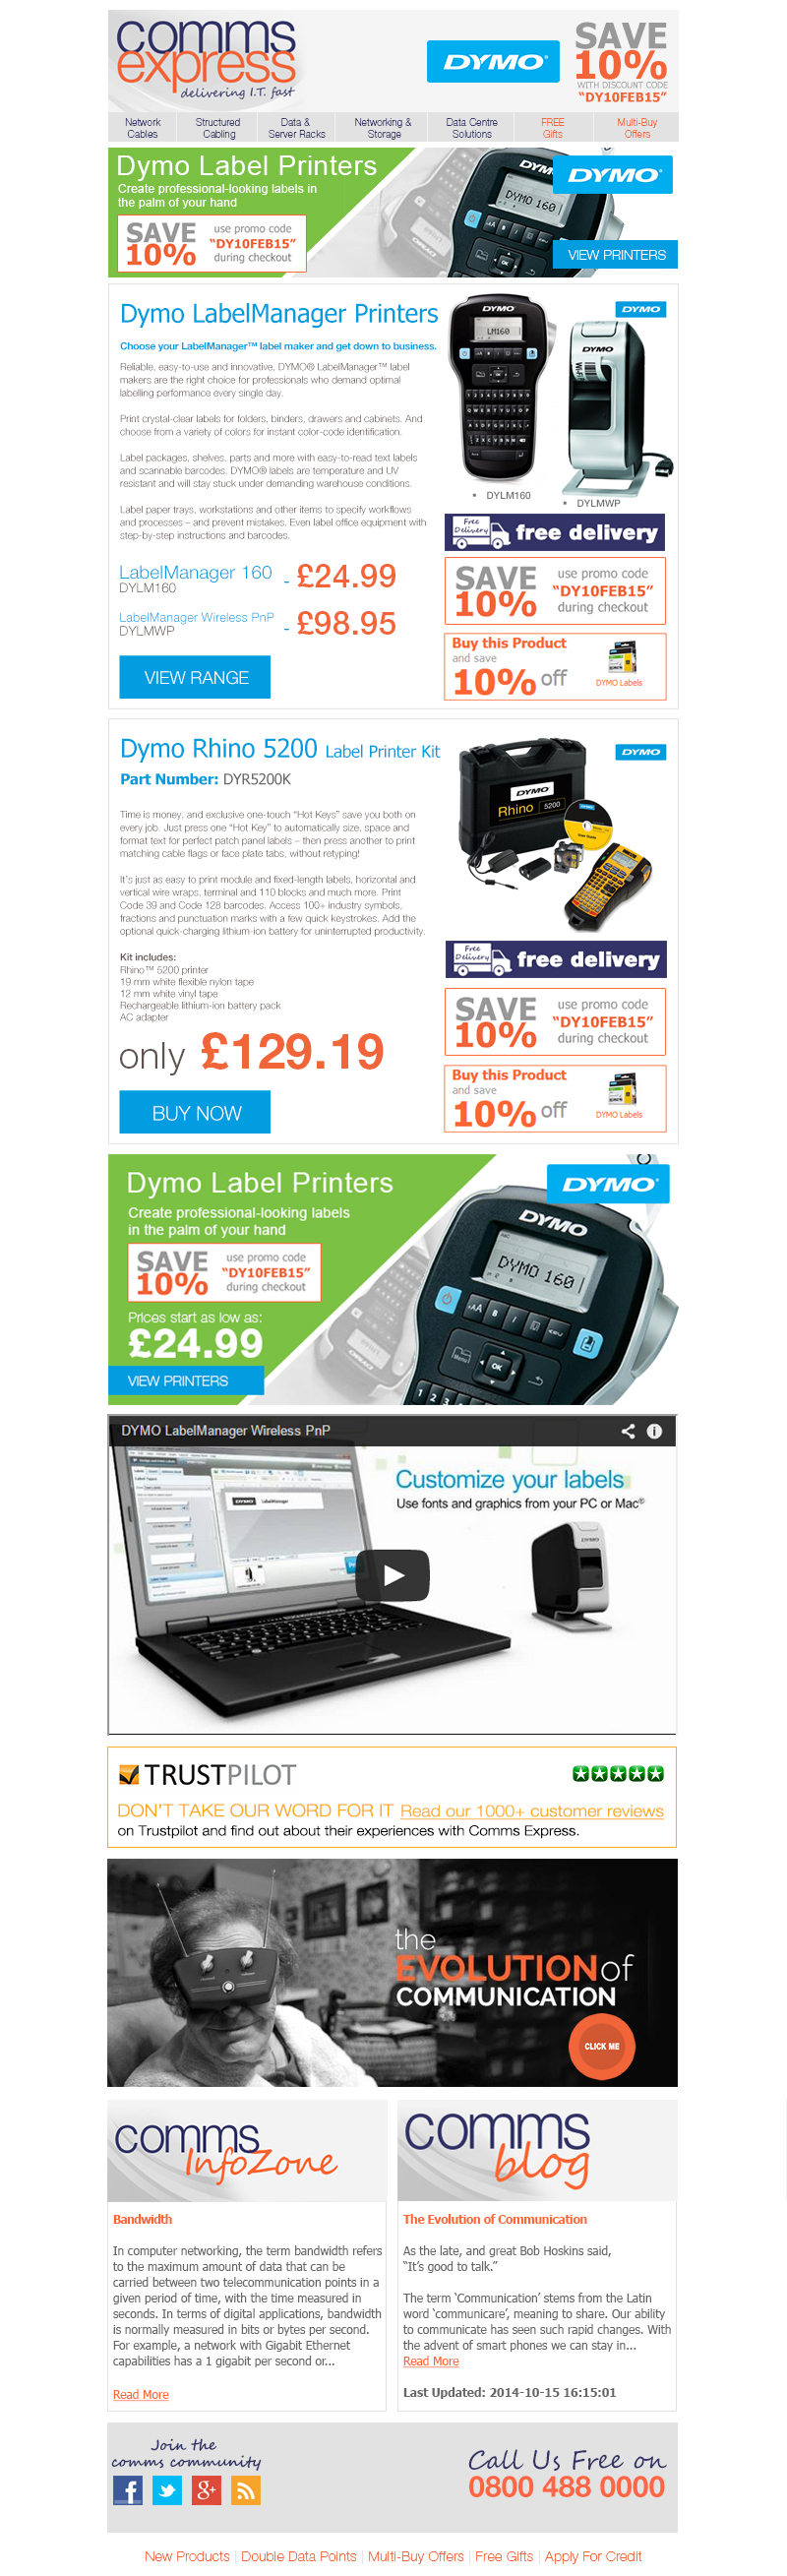 Receive a 10 Percent Discount on DYMO Label Printers